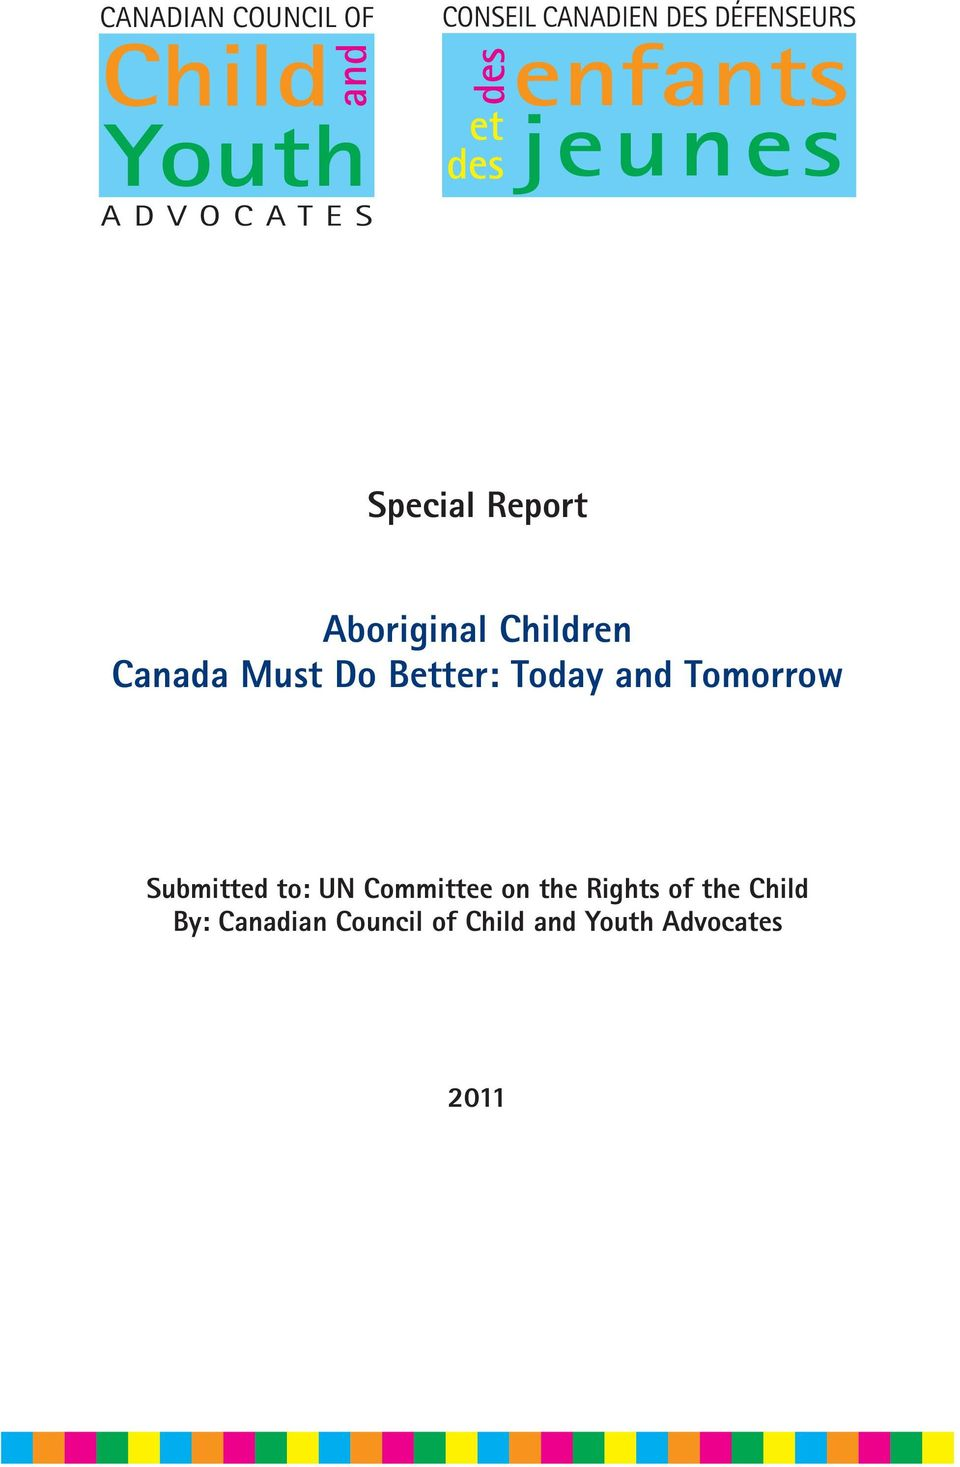 Today Tomorrow Submitted to: UN Committee on